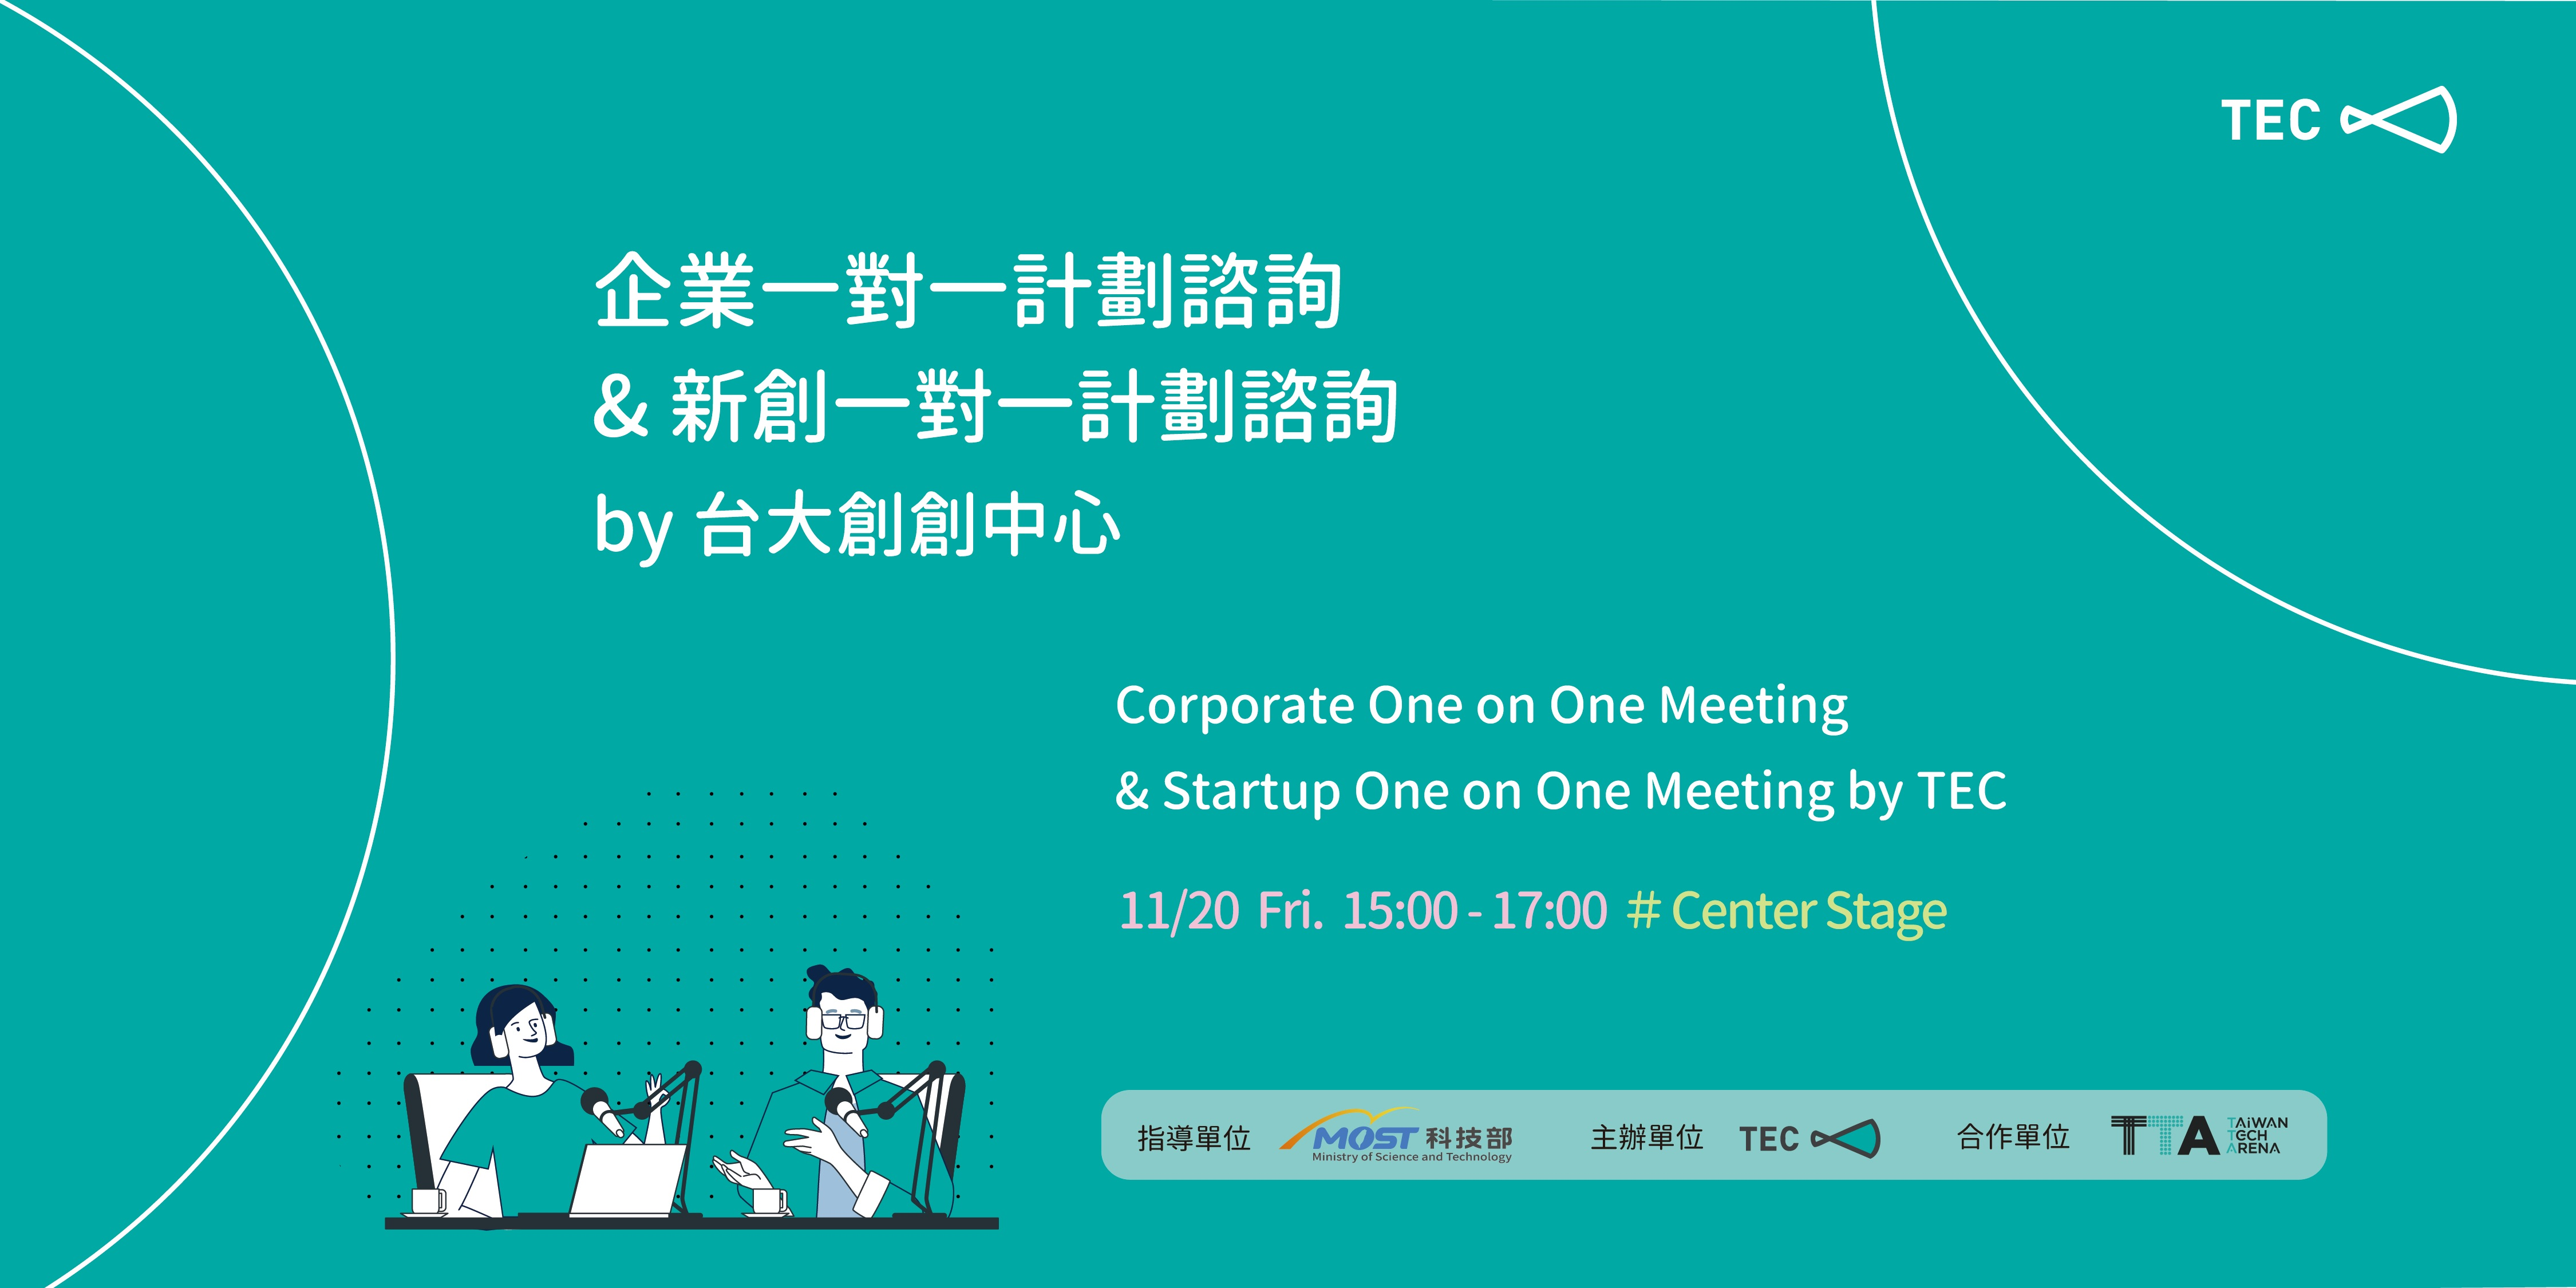 Corporate One on One Meeting & Startup One on One Meeting by TEC